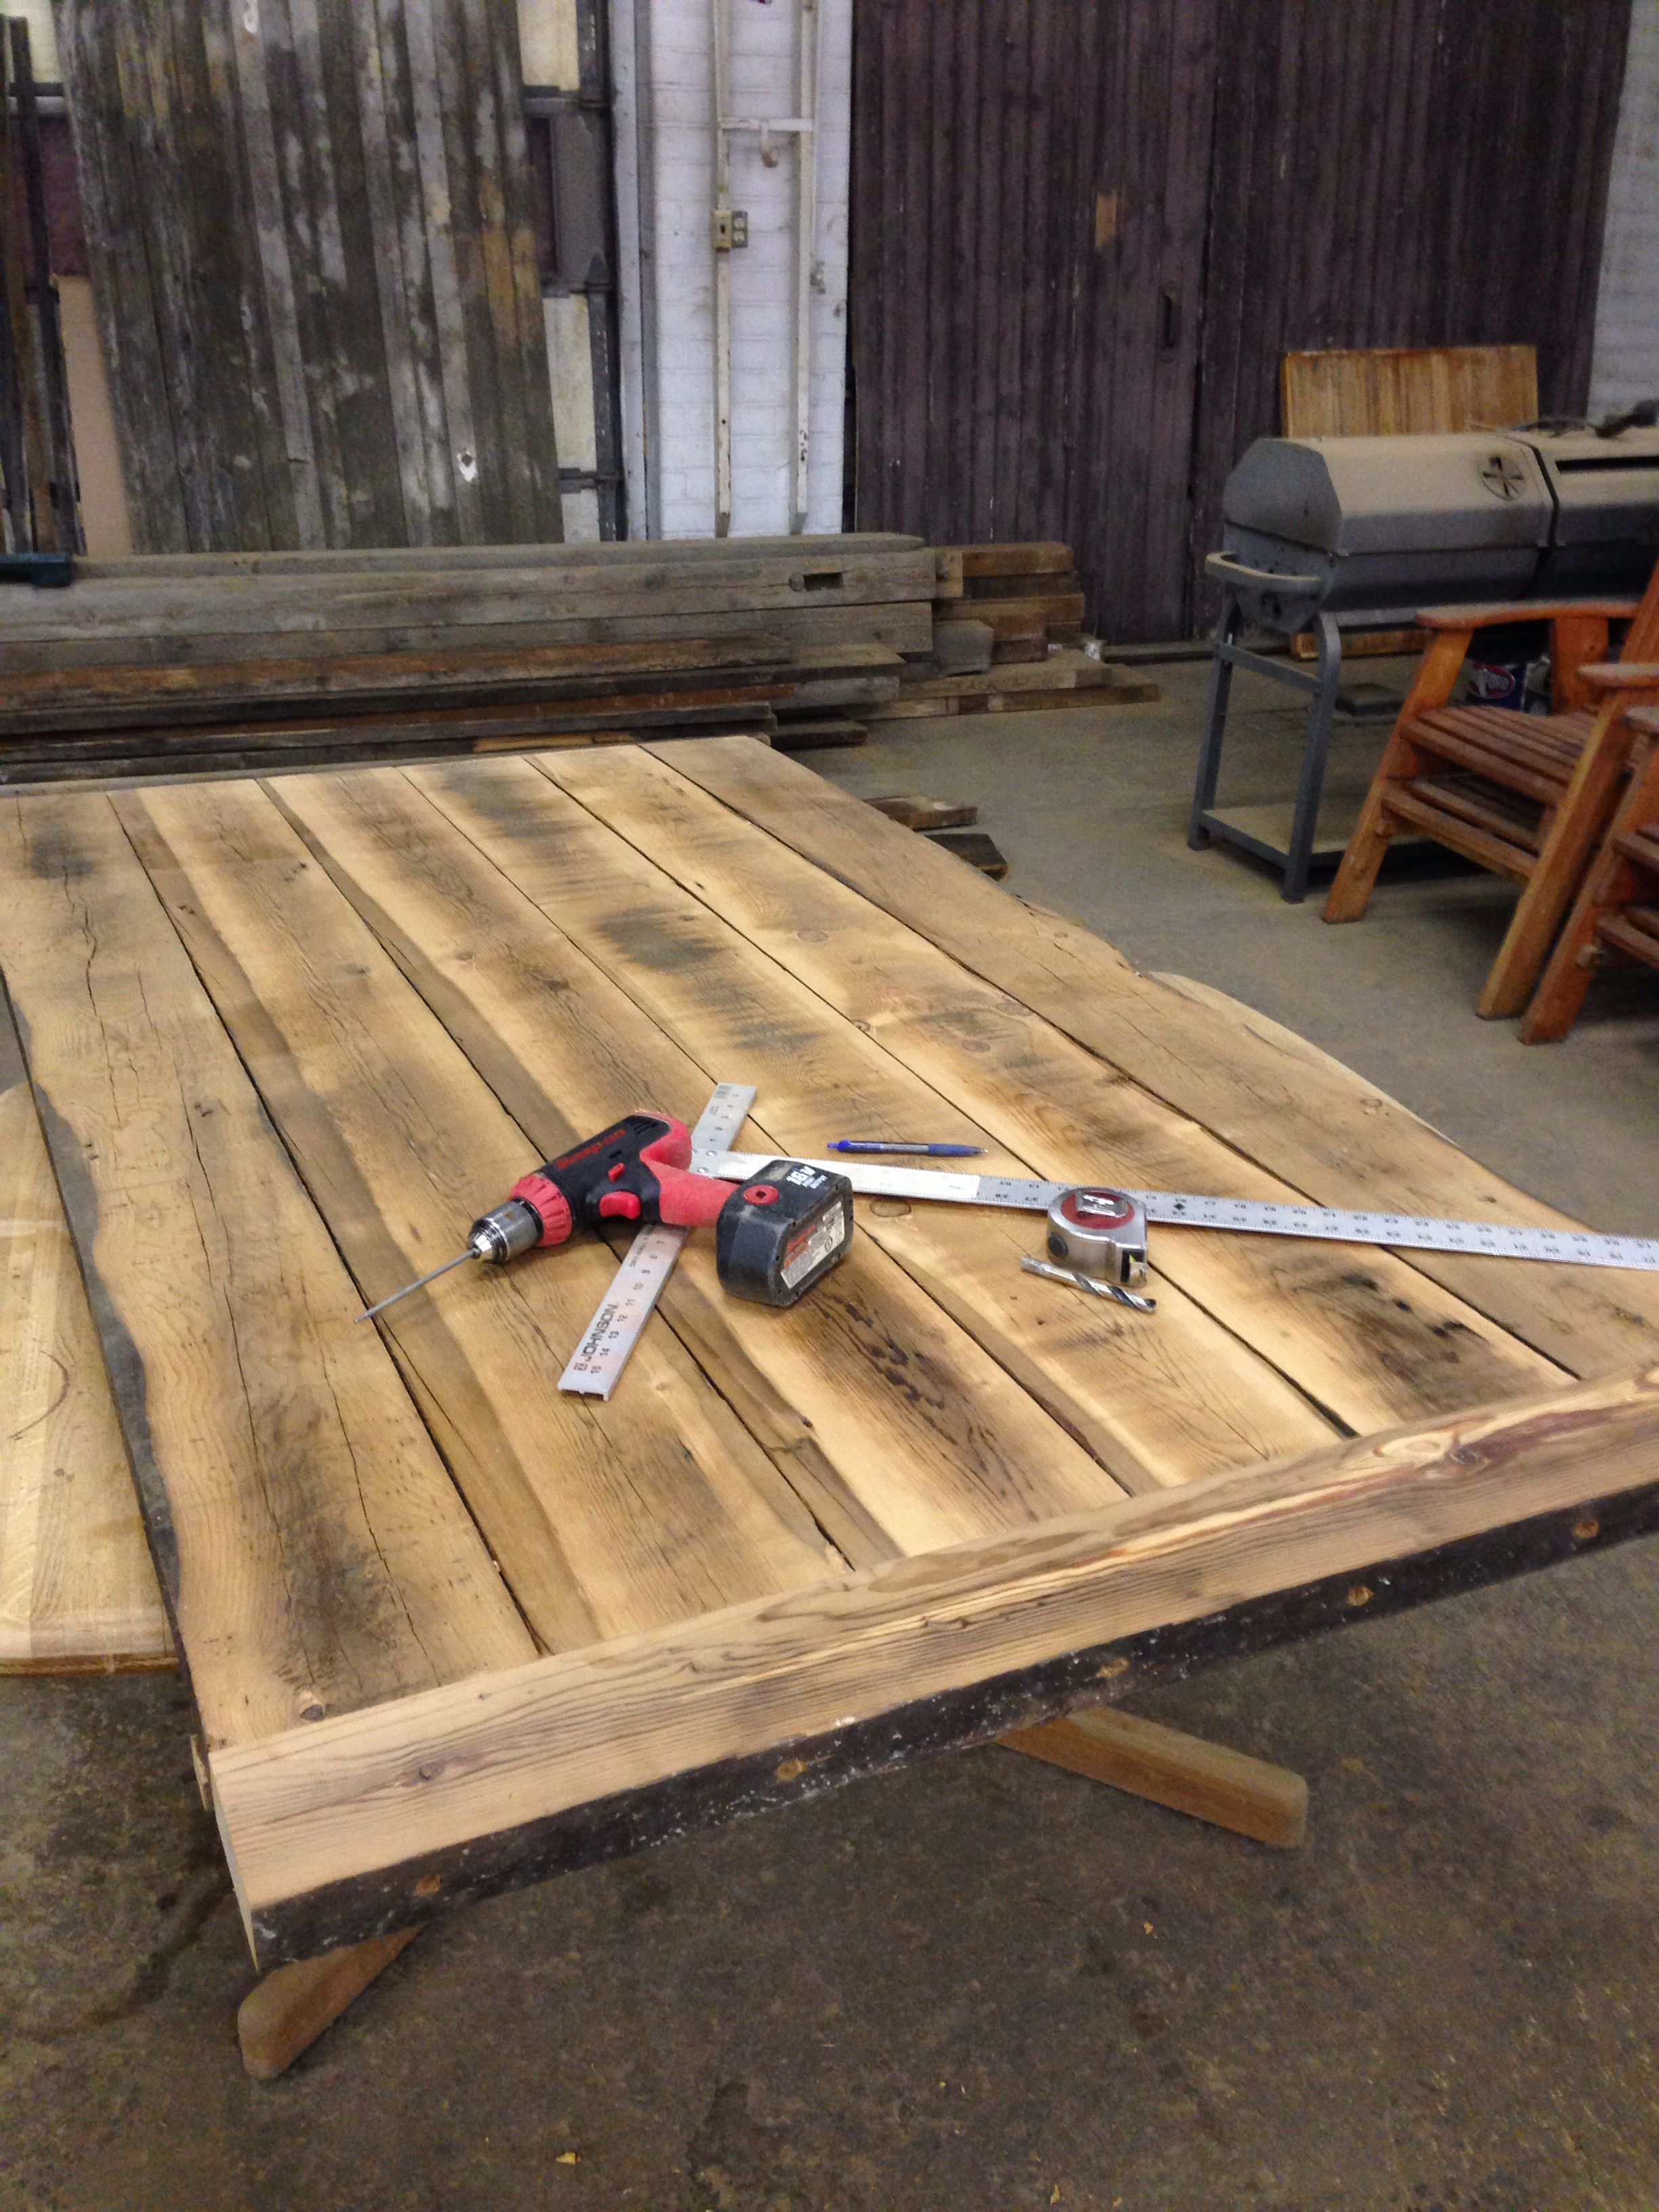 Beautiful plank table in progress... This is wood